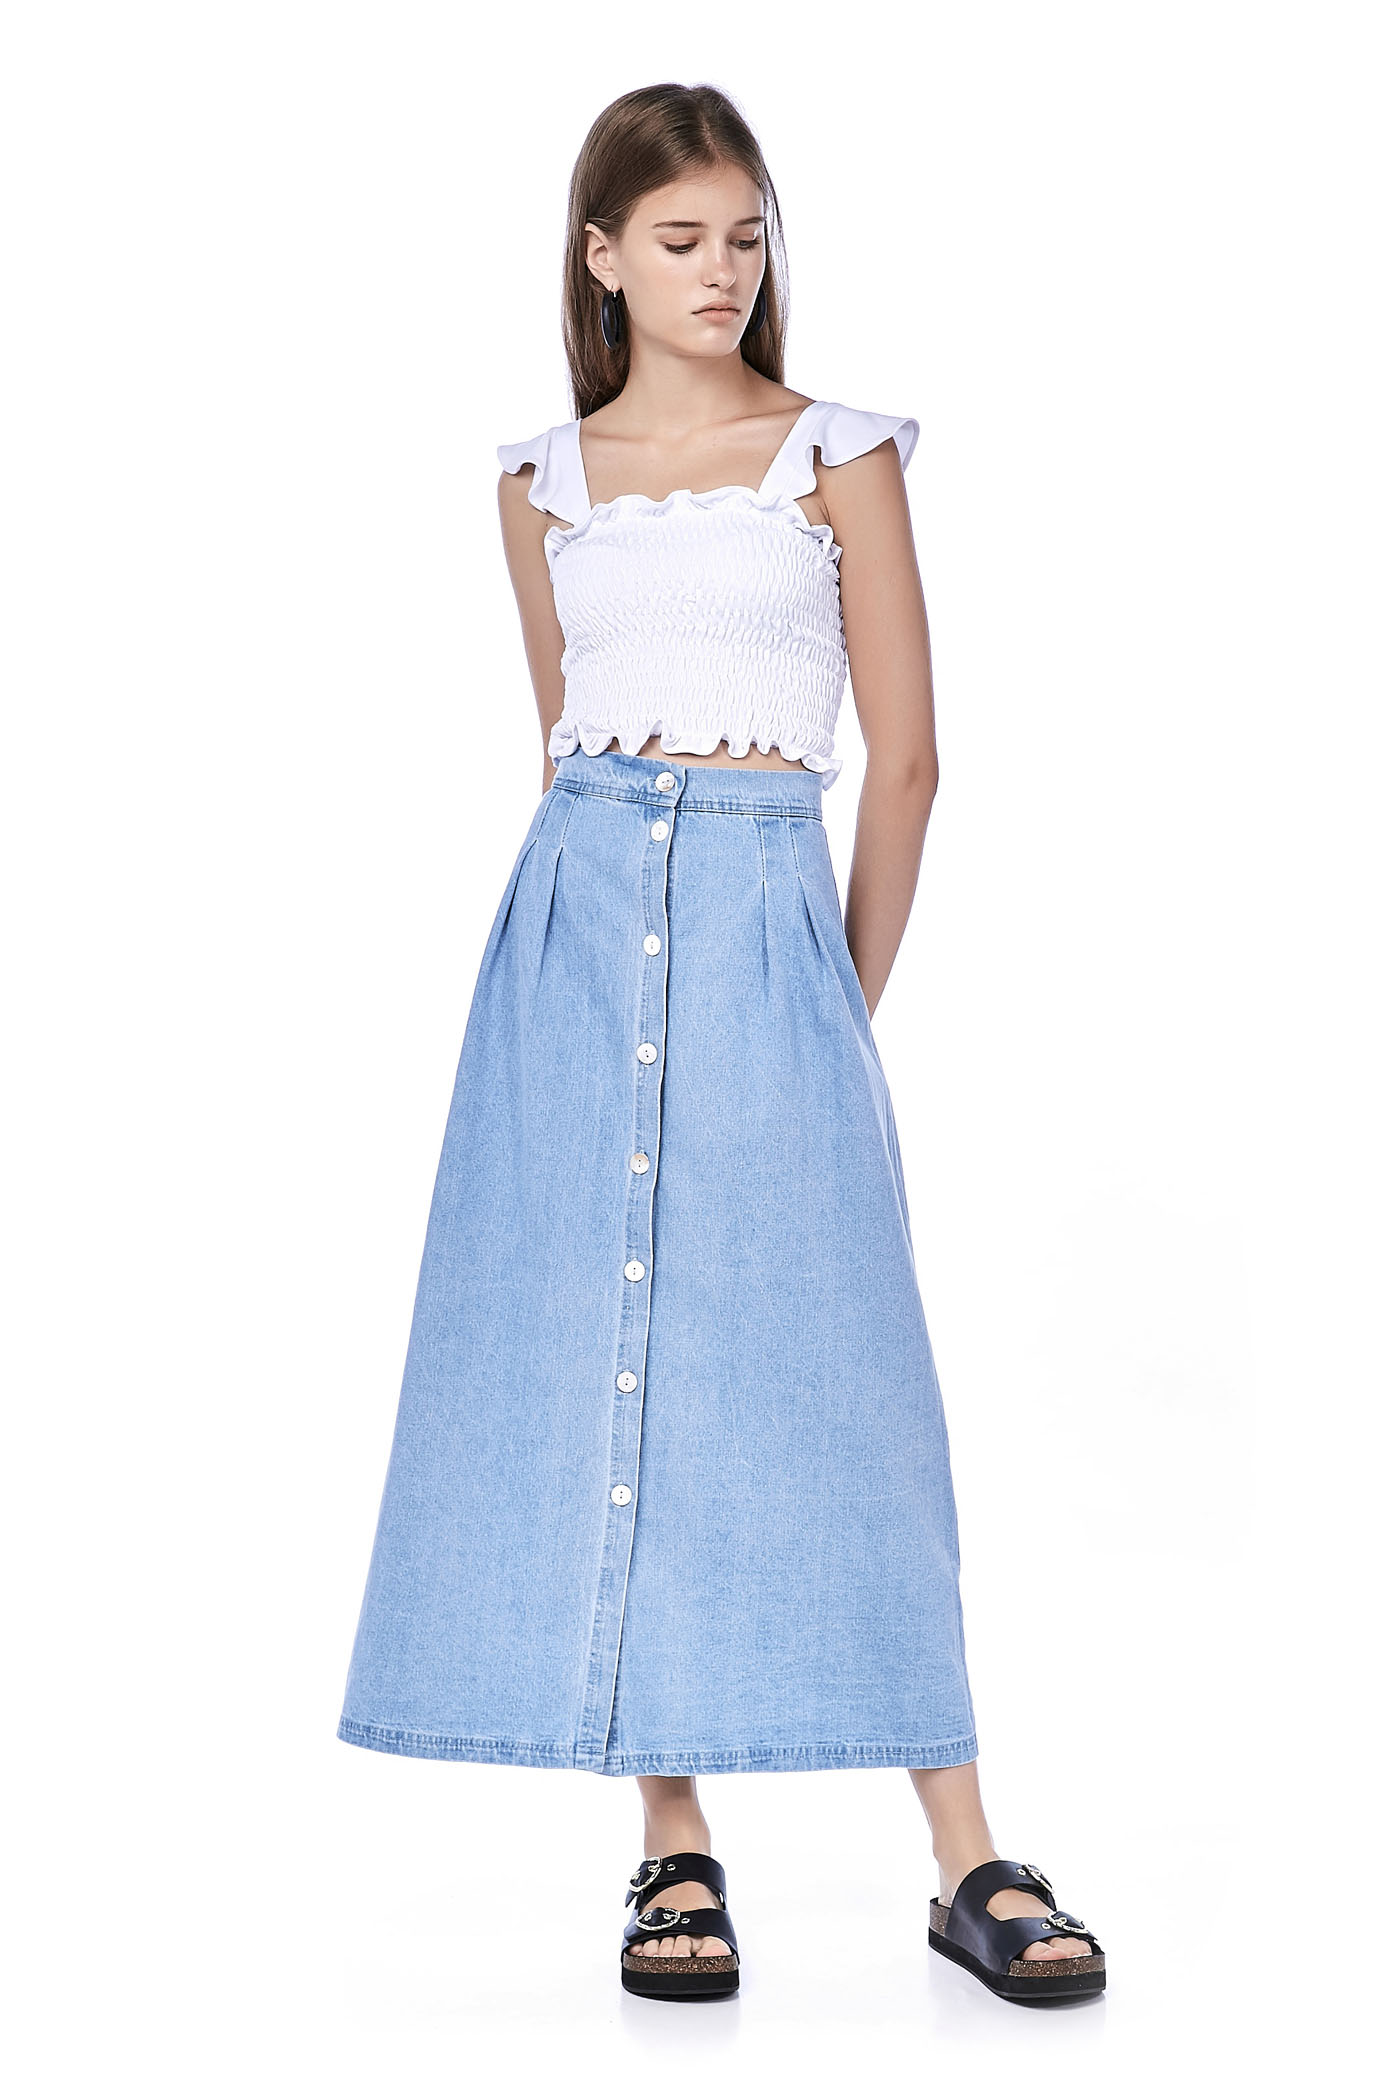 Lyre Button-Through Denim Skirt